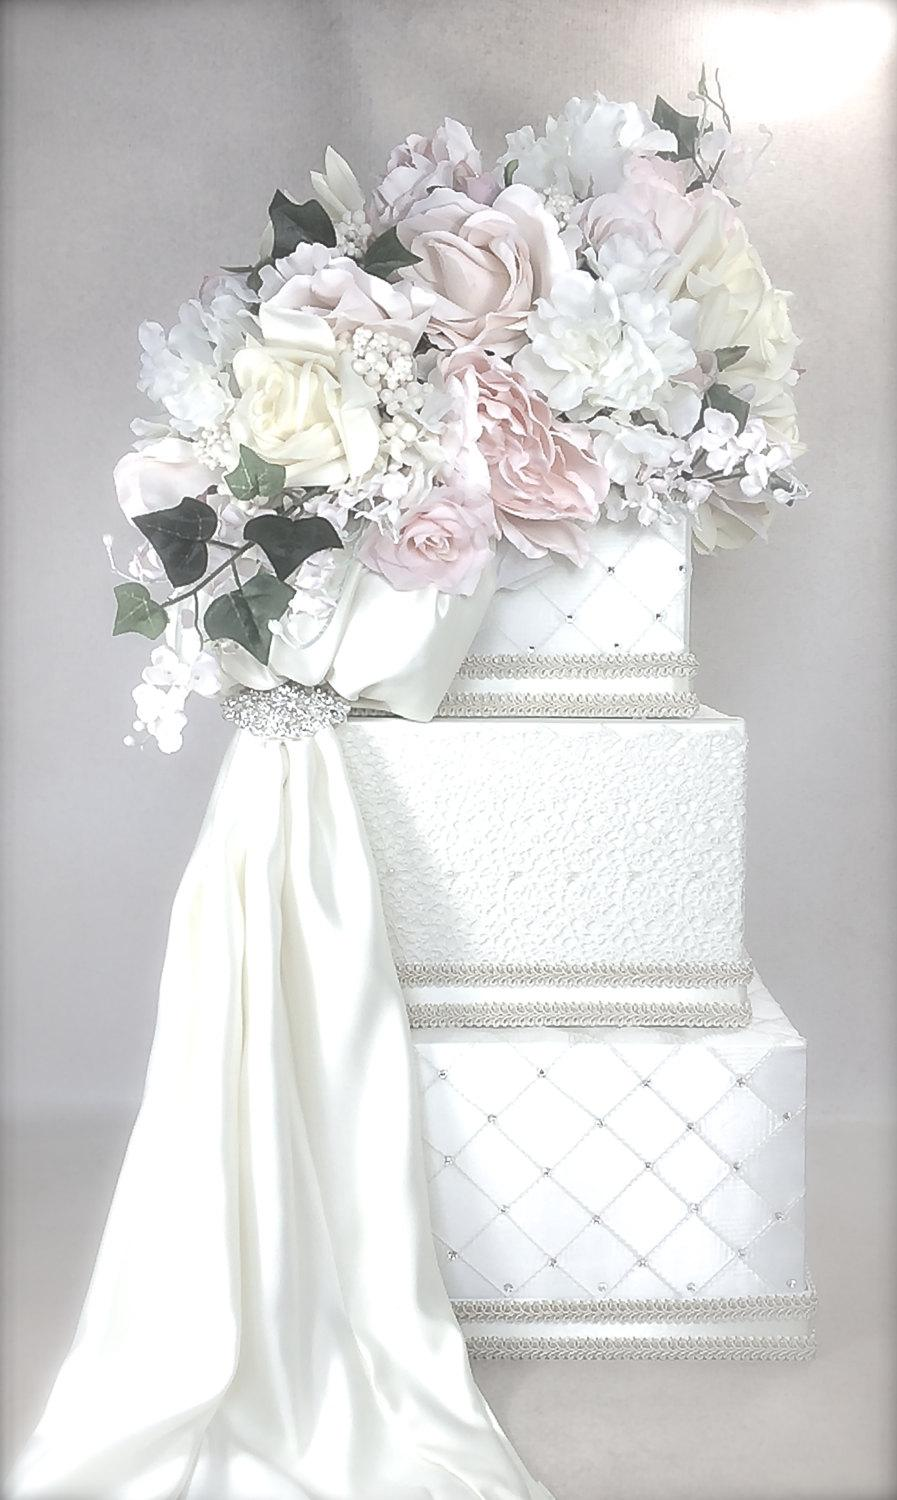 Wedding - Lace and Soft Pastel Wedding Card Holder, Wedding Card Box,  Secured Lock Wedding Card Box,  Wedding Card Box